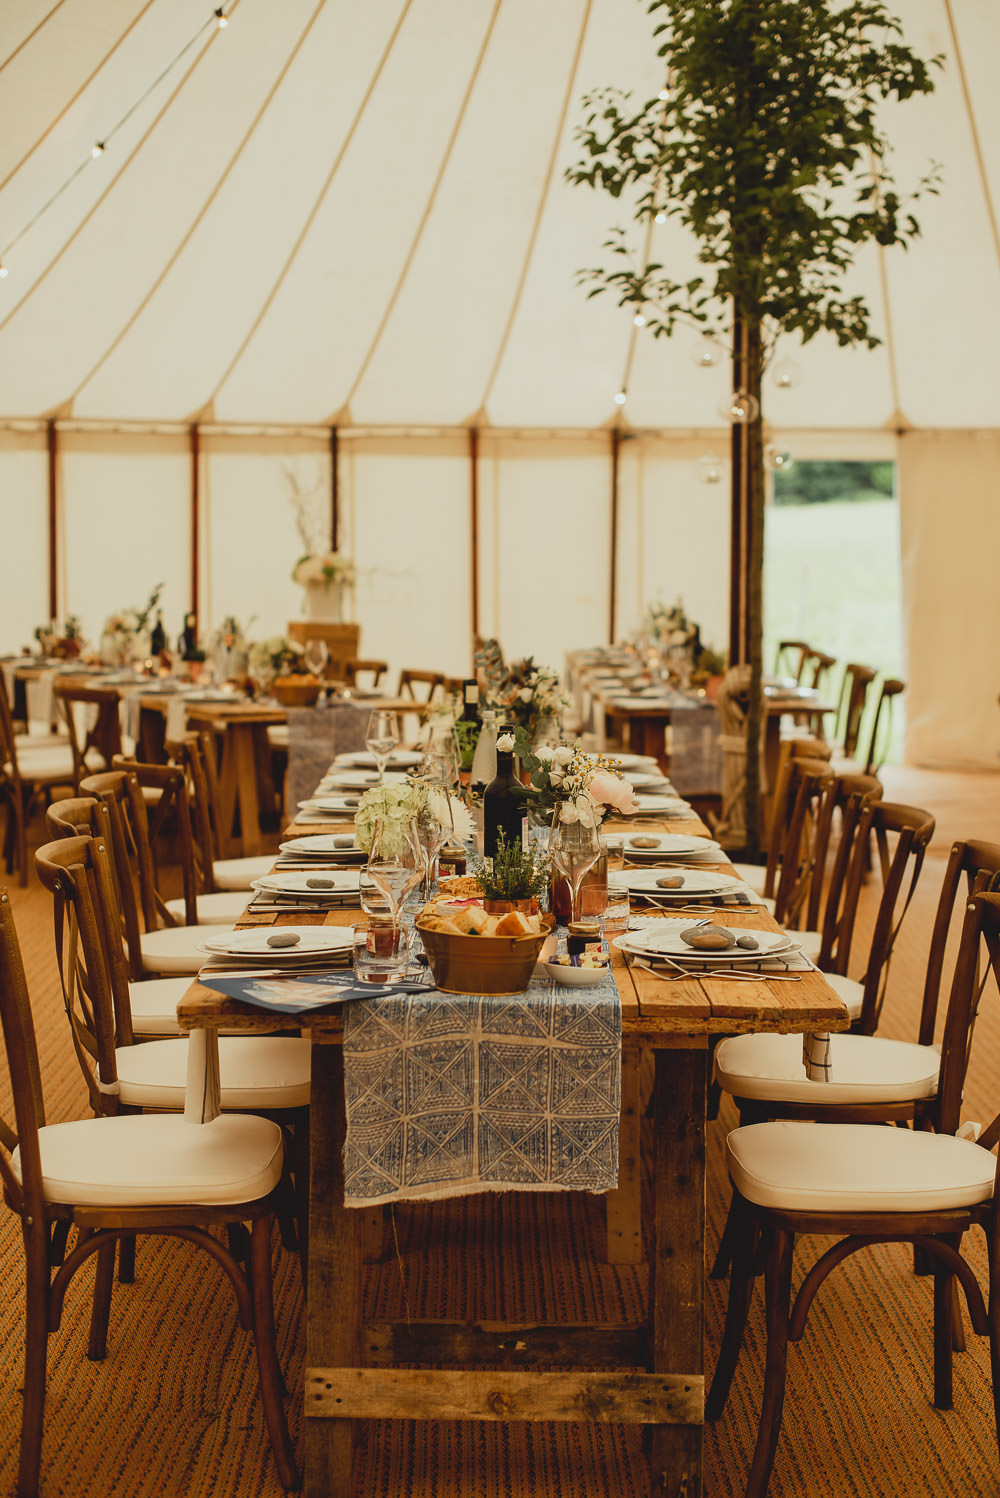 Sperry Tent Wooden Cross Back Chair Greenery Foliage Printed Table Runner Weekend Long Wedding Georgia Rachael Photography